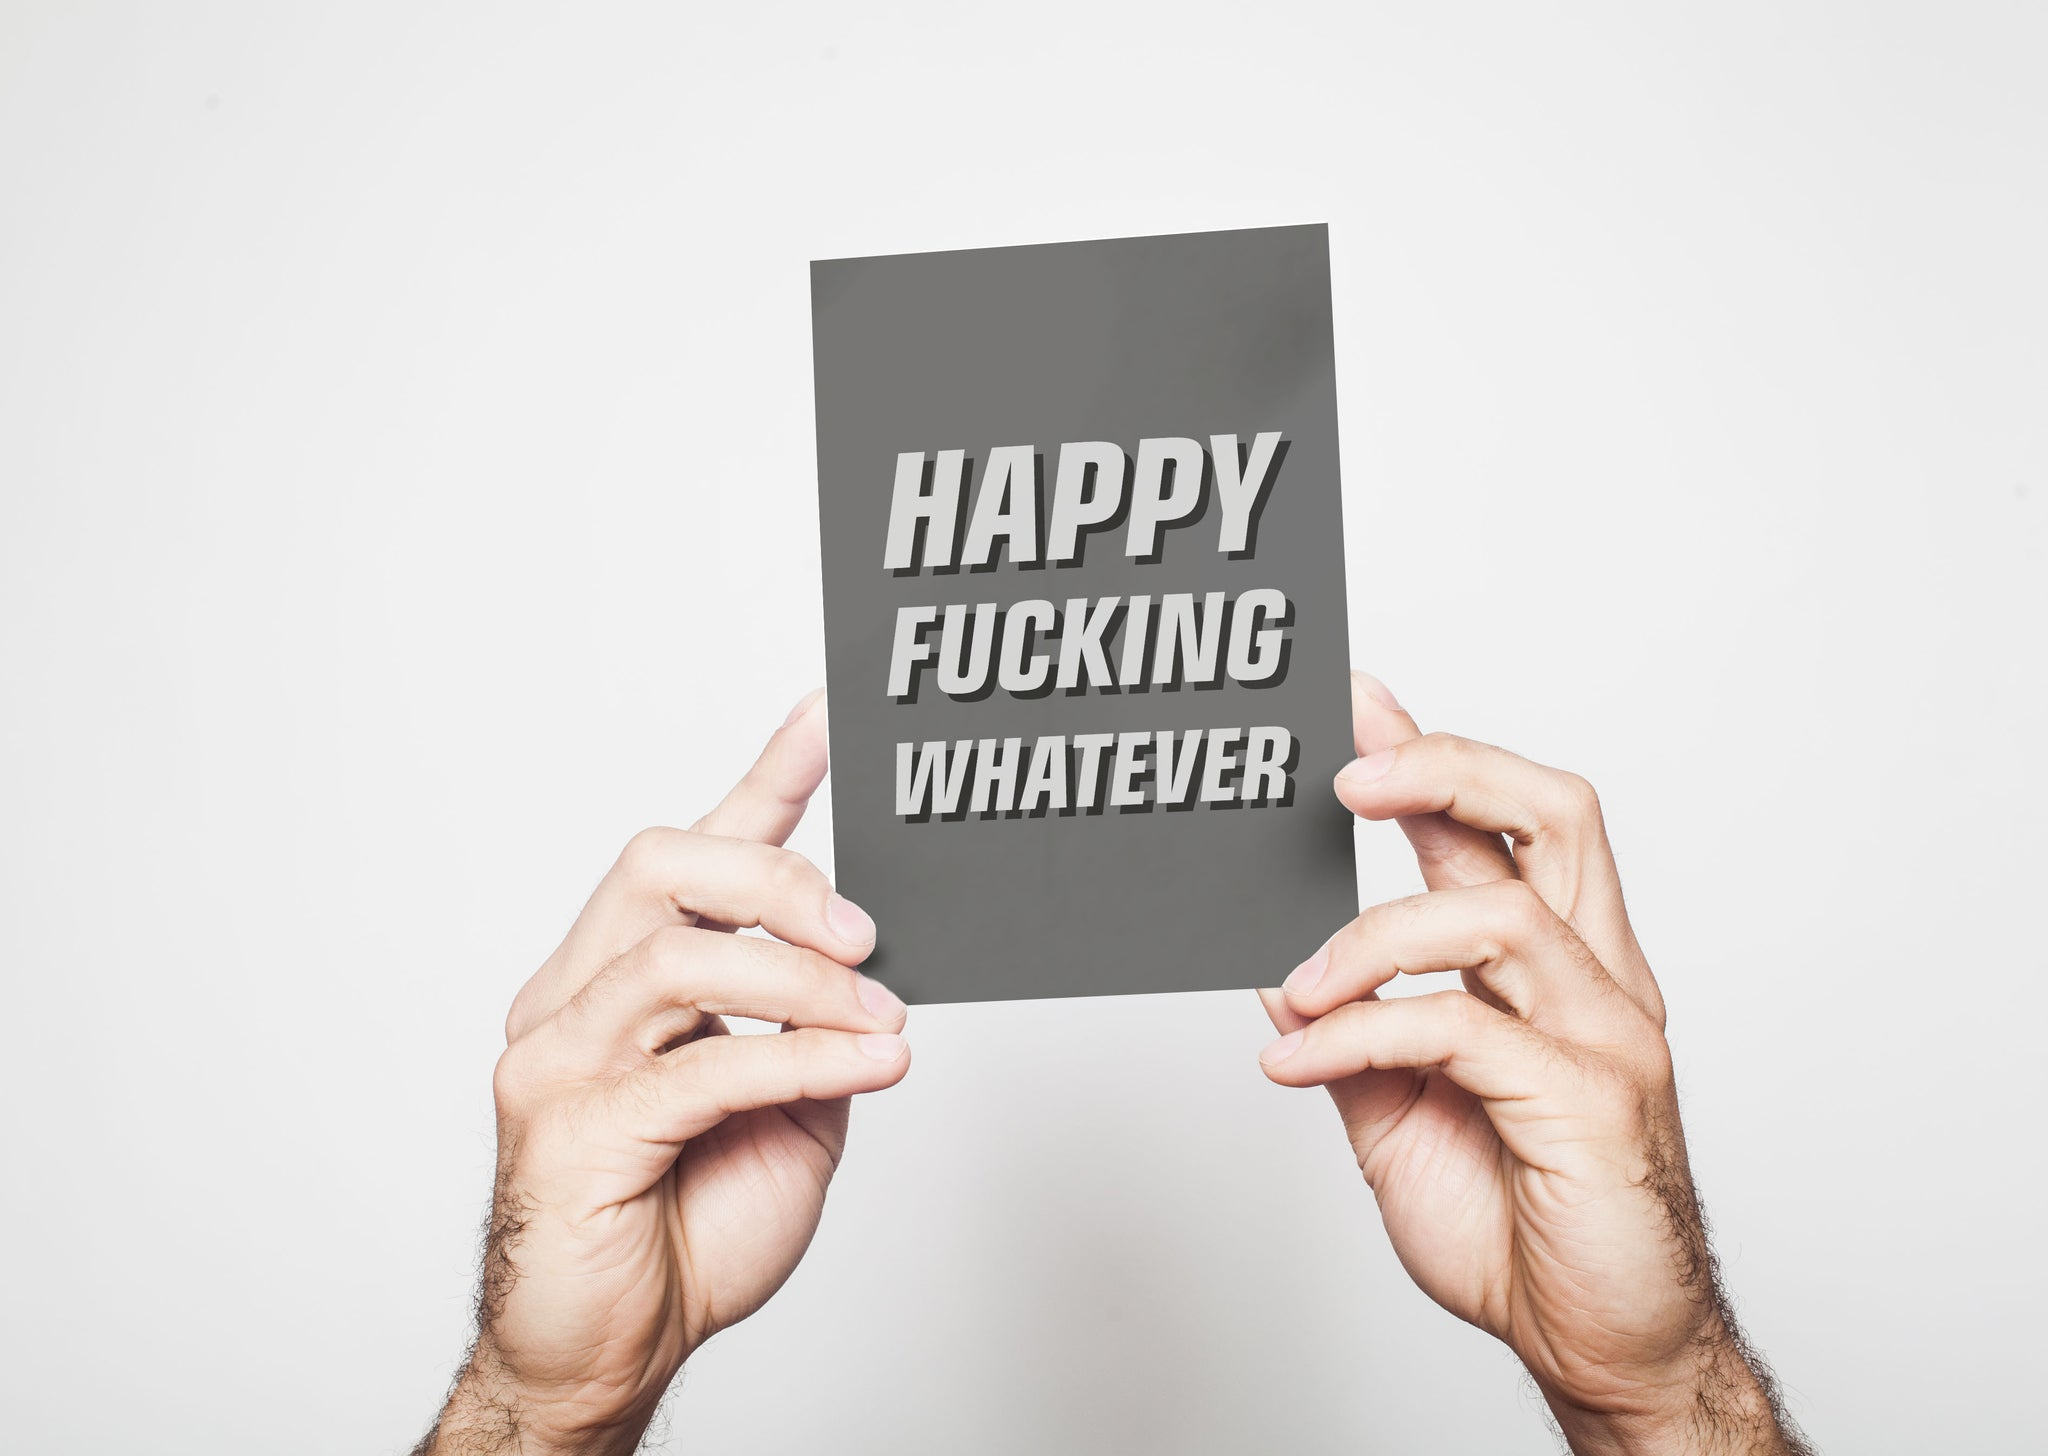 Happy fucking whatever